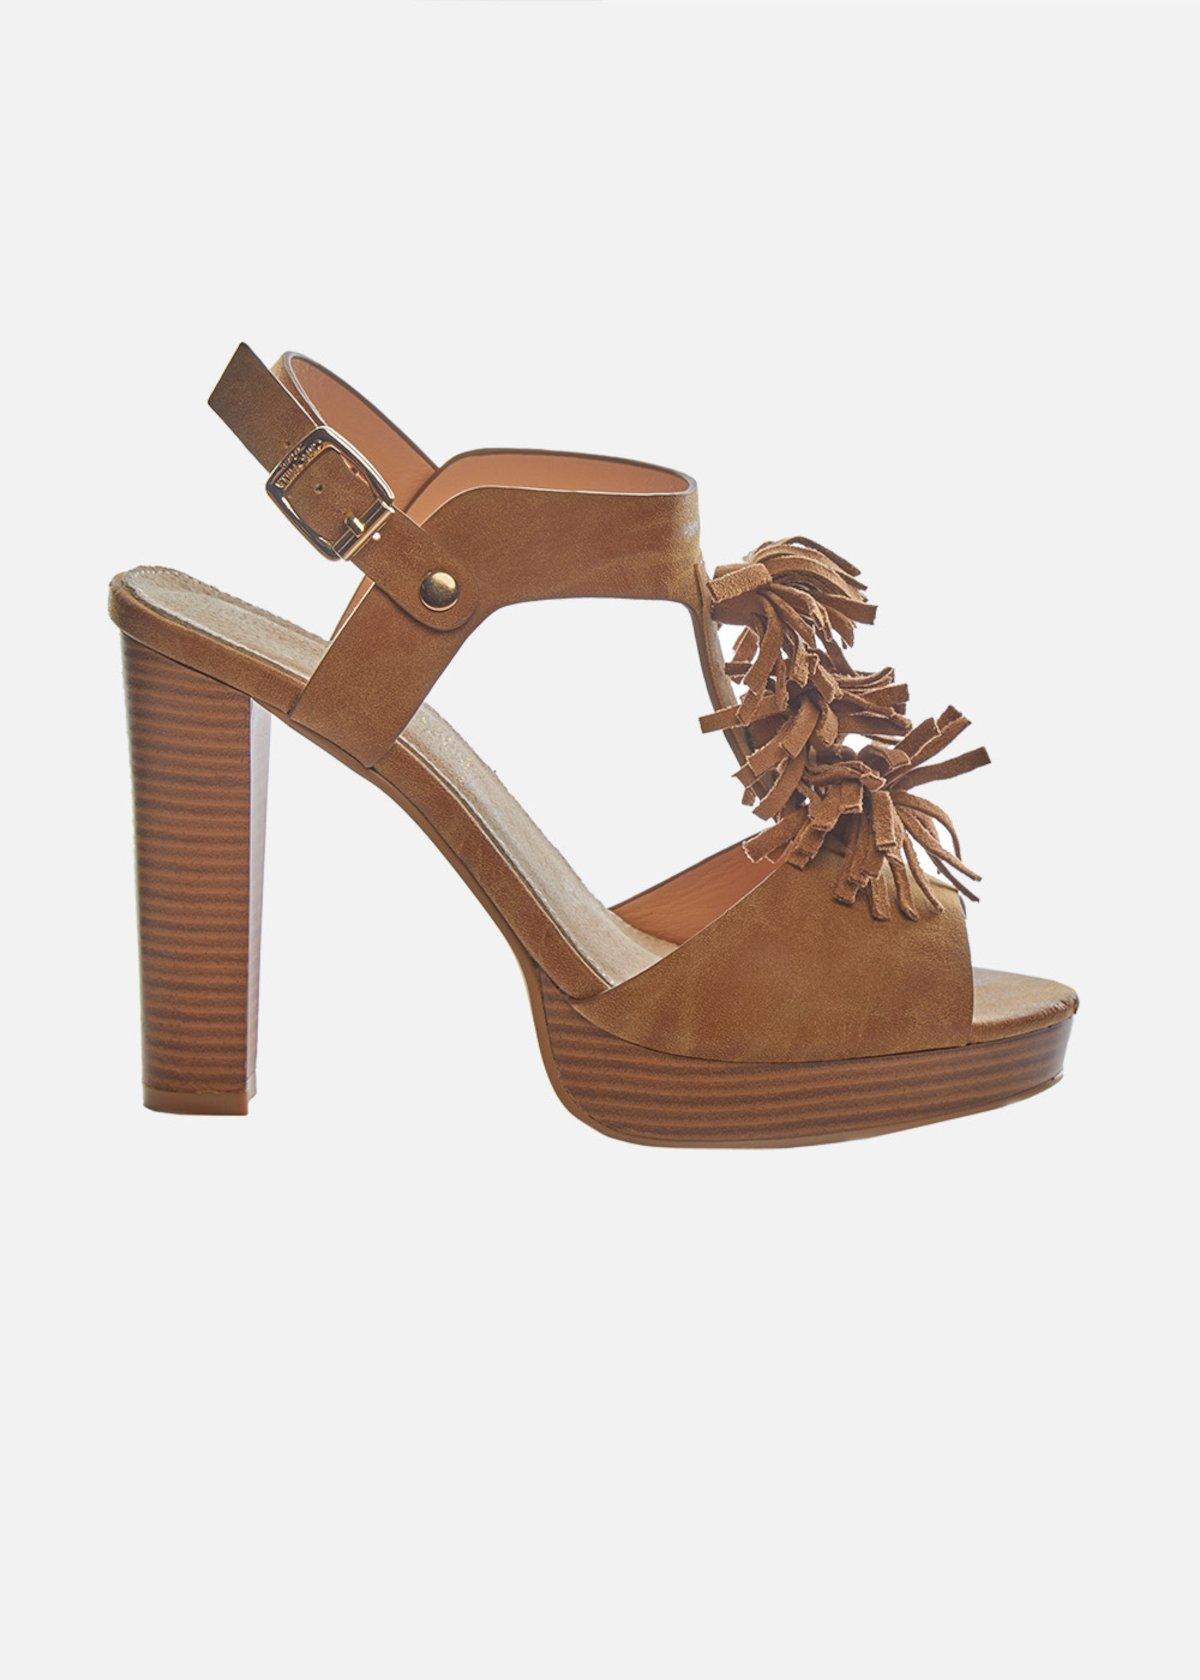 High heel Sandals Santania with fringe detail